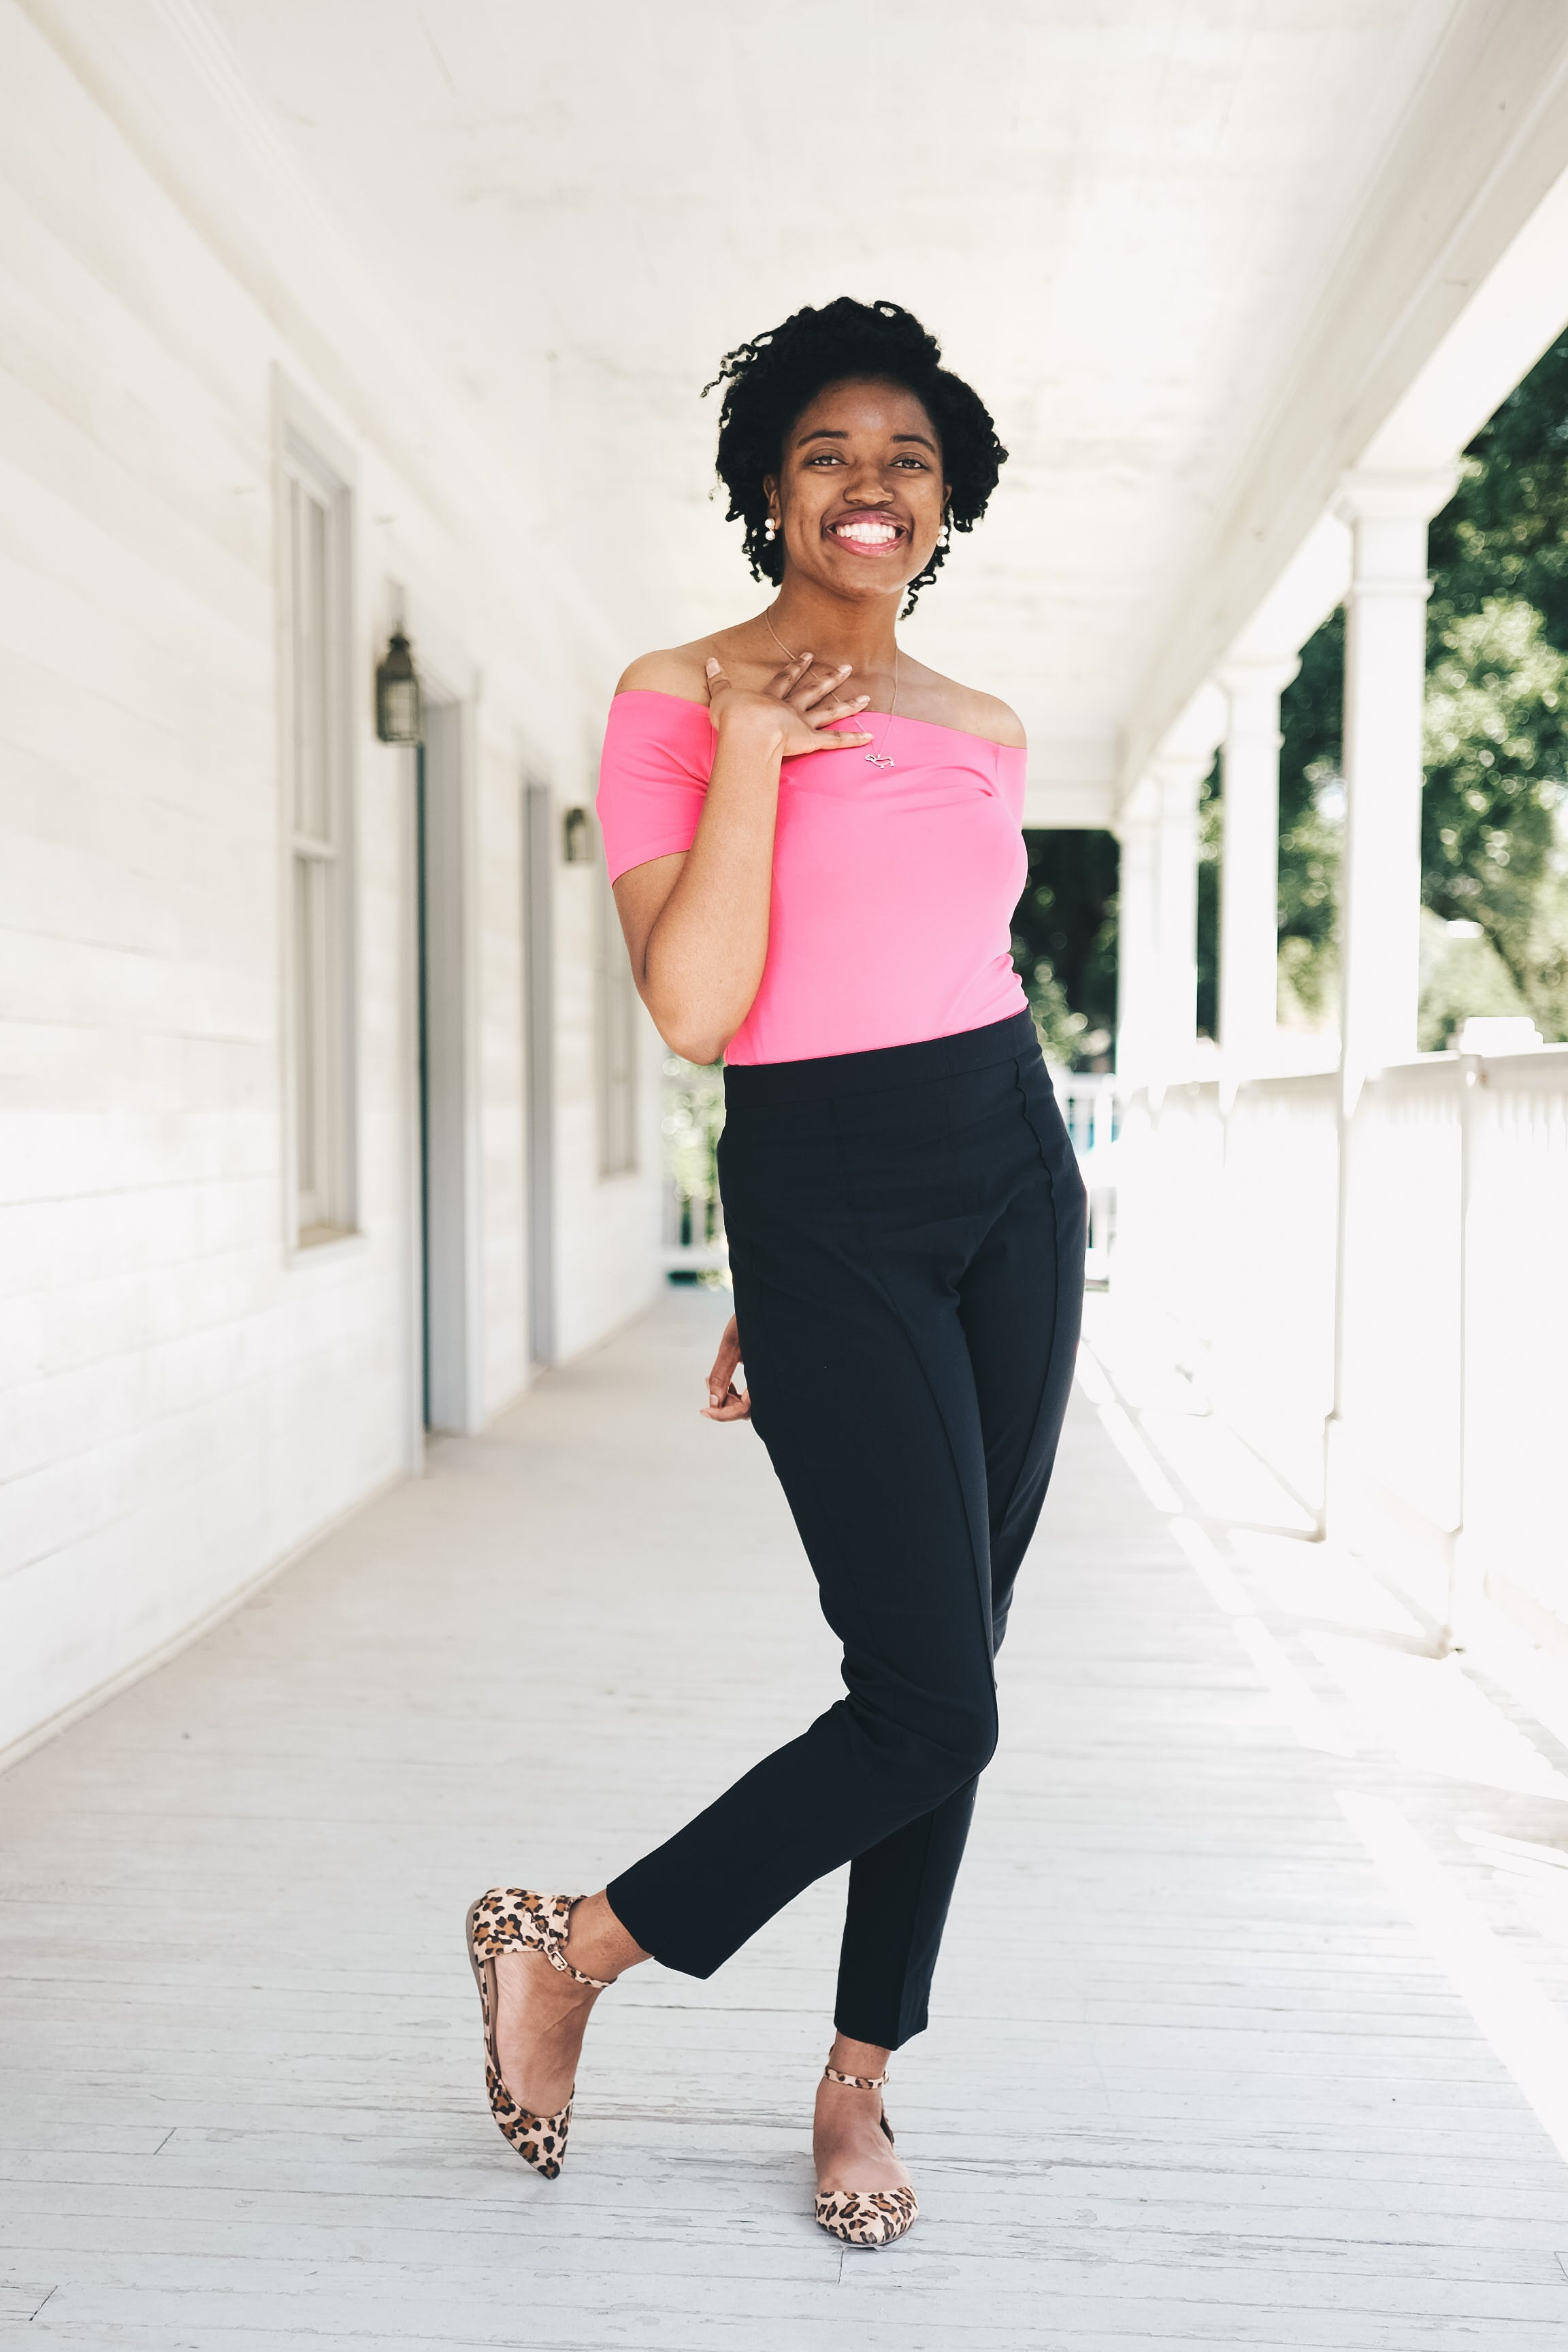 Woman Wearing Pink Off-shoulder Shirt and Black Pants While Standing Near Wall